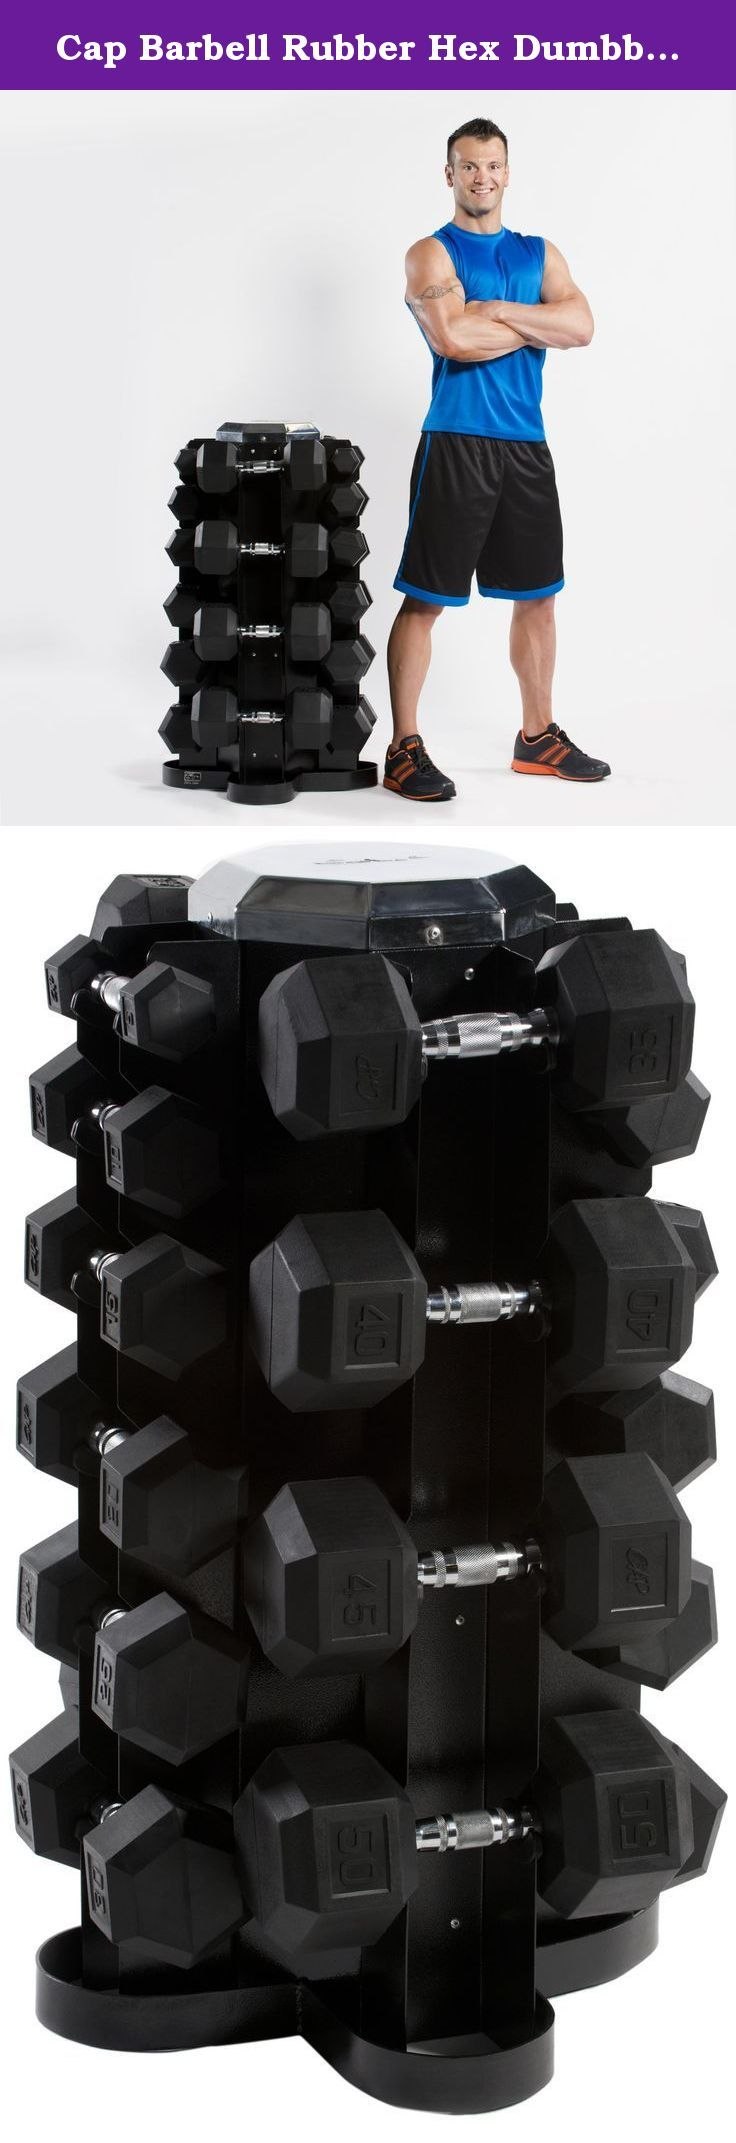 Cap Barbell Rubber Hex Dumbbell Set, 550-Pound. CAP Barbell SDRS-550 550 pound Rubber Hex Dumbbell Set - 5-50 pounds in 5 pound increments, with 4 sided vertical dumbbell rack. Ideal for commercial or home use.